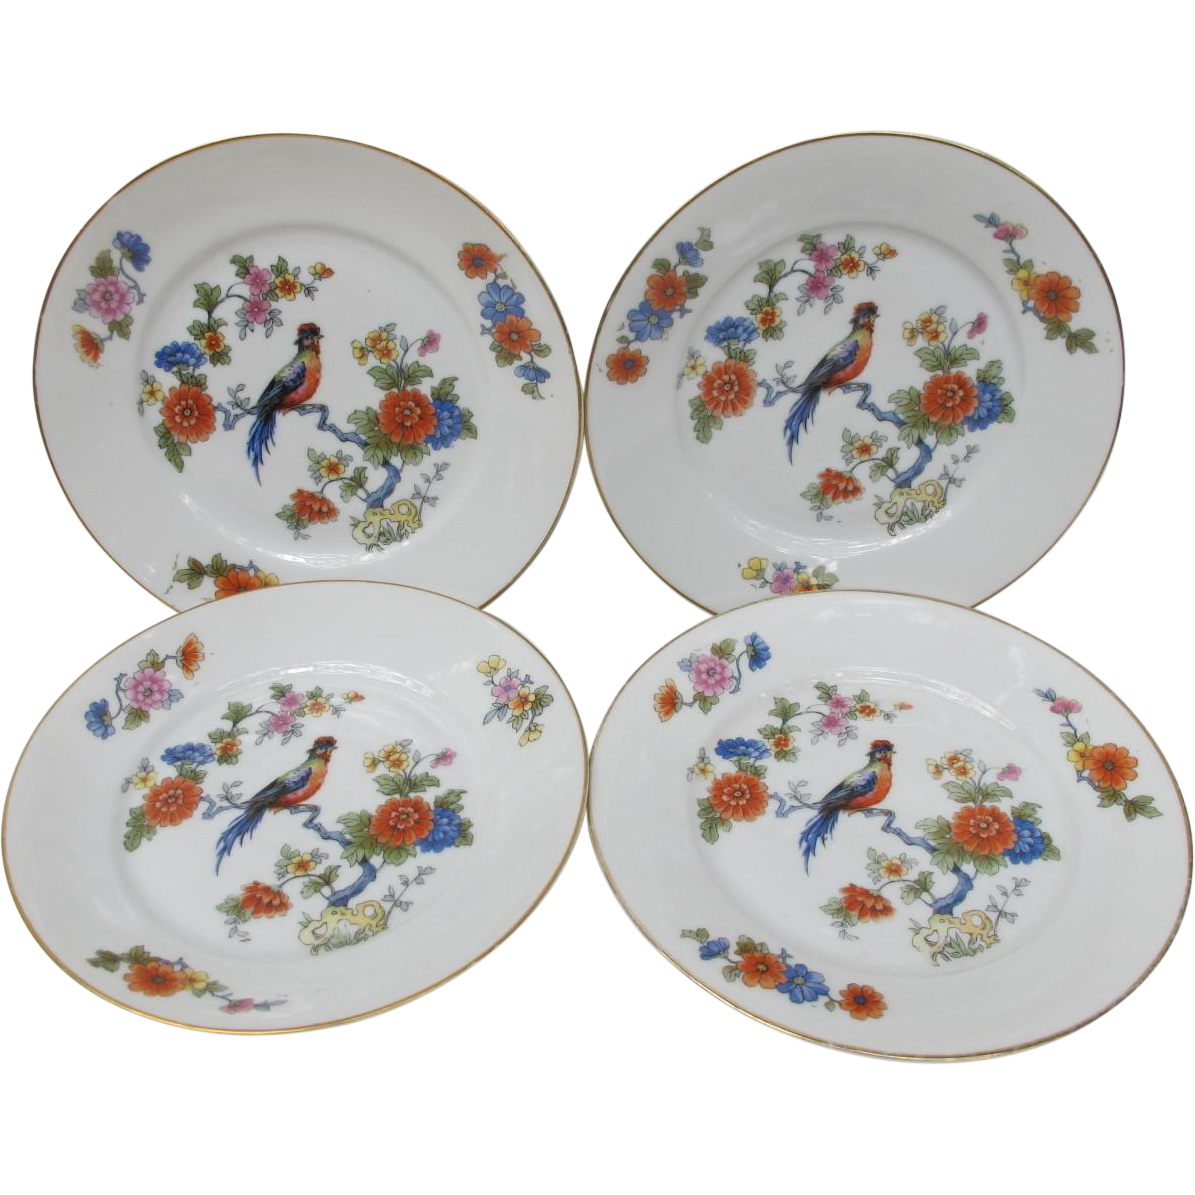 Vintage Bread Sandwich Dessert Bird of Paradise Plates from Germany Set of Four